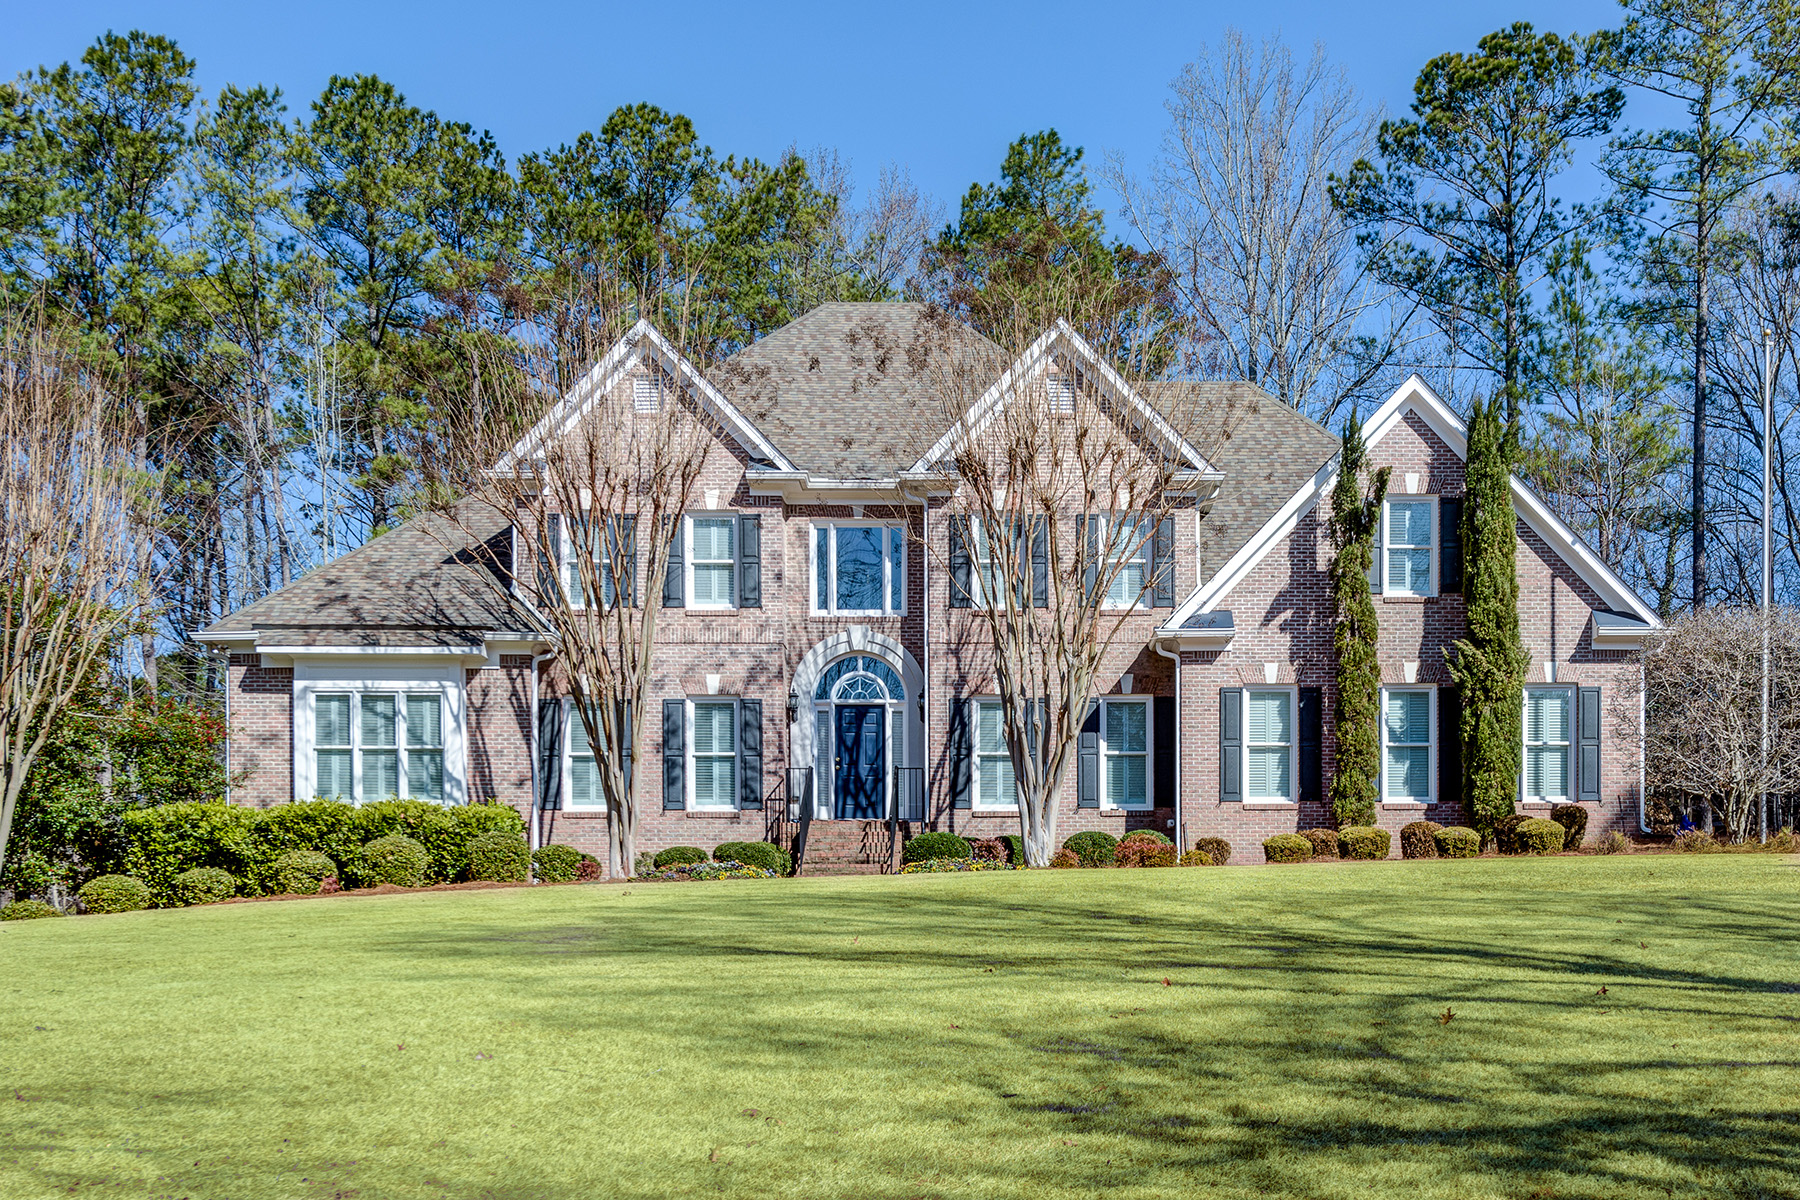 Single Family Home for Sale at Unique Private Setting, Suburban Elegance 2808 Spreading Oaks Drive NW Acworth, Georgia 30101 United States